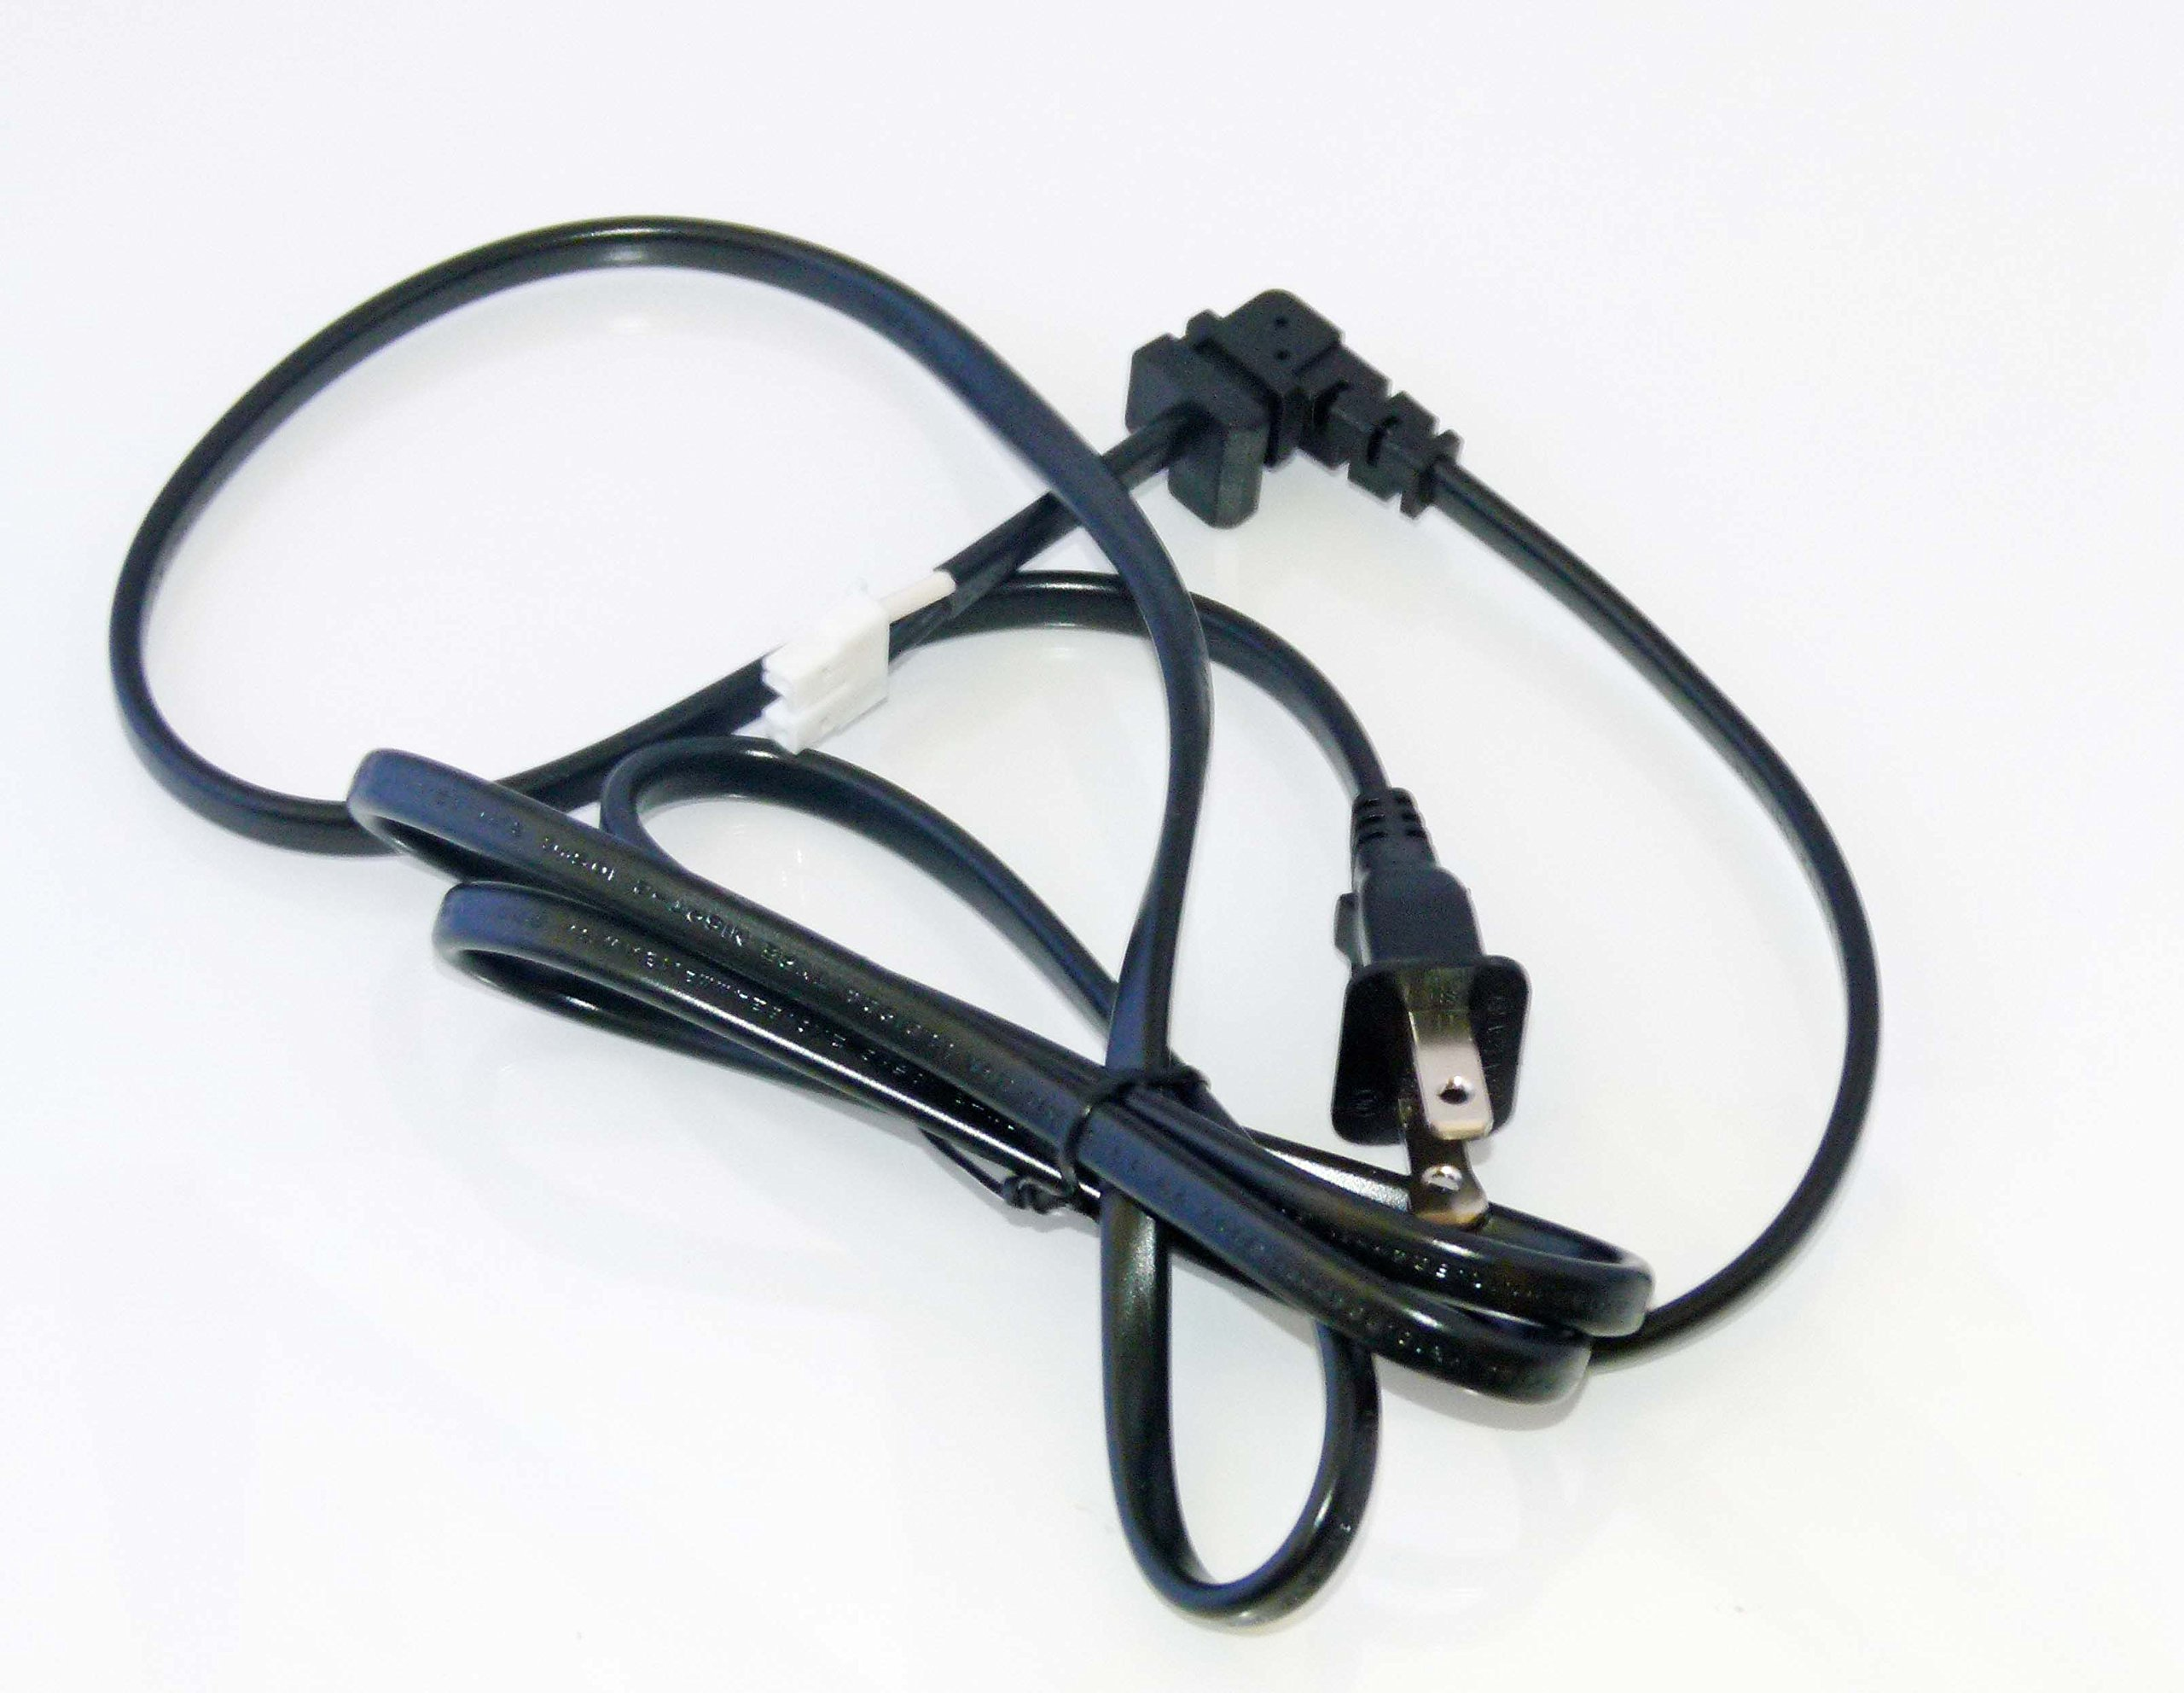 OEM Sony Power Cord USA Only Originally Shipped With KD55X720E, KD-55X720E, XBR65X750D, XBR-65X750D, KD55X727E, KD-55X727E by Sony (Image #1)